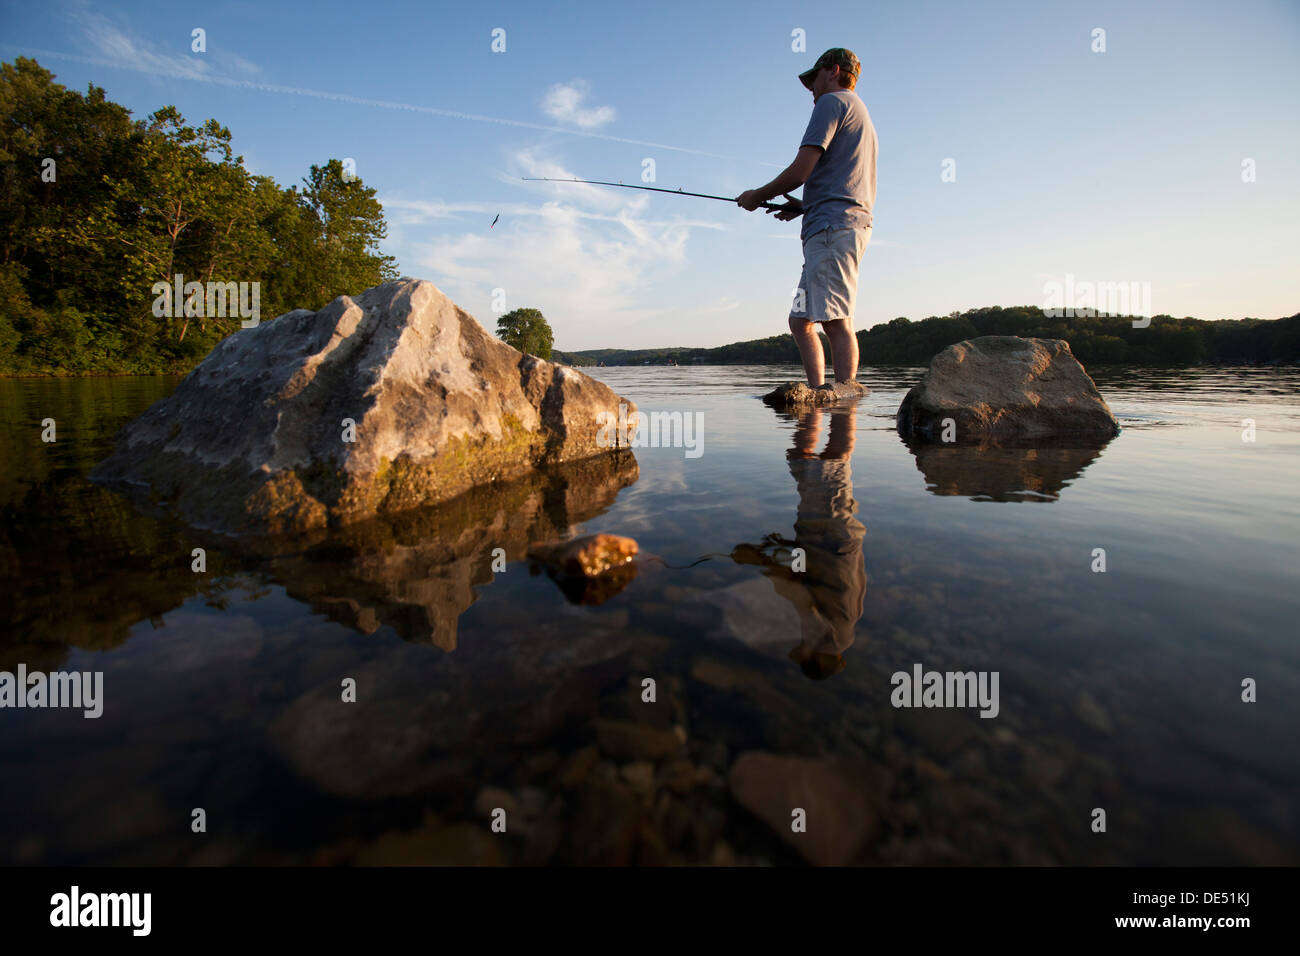 A man casts his line while fishing on Lake Windsor in Bella Vista, Arkansas. - Stock Image